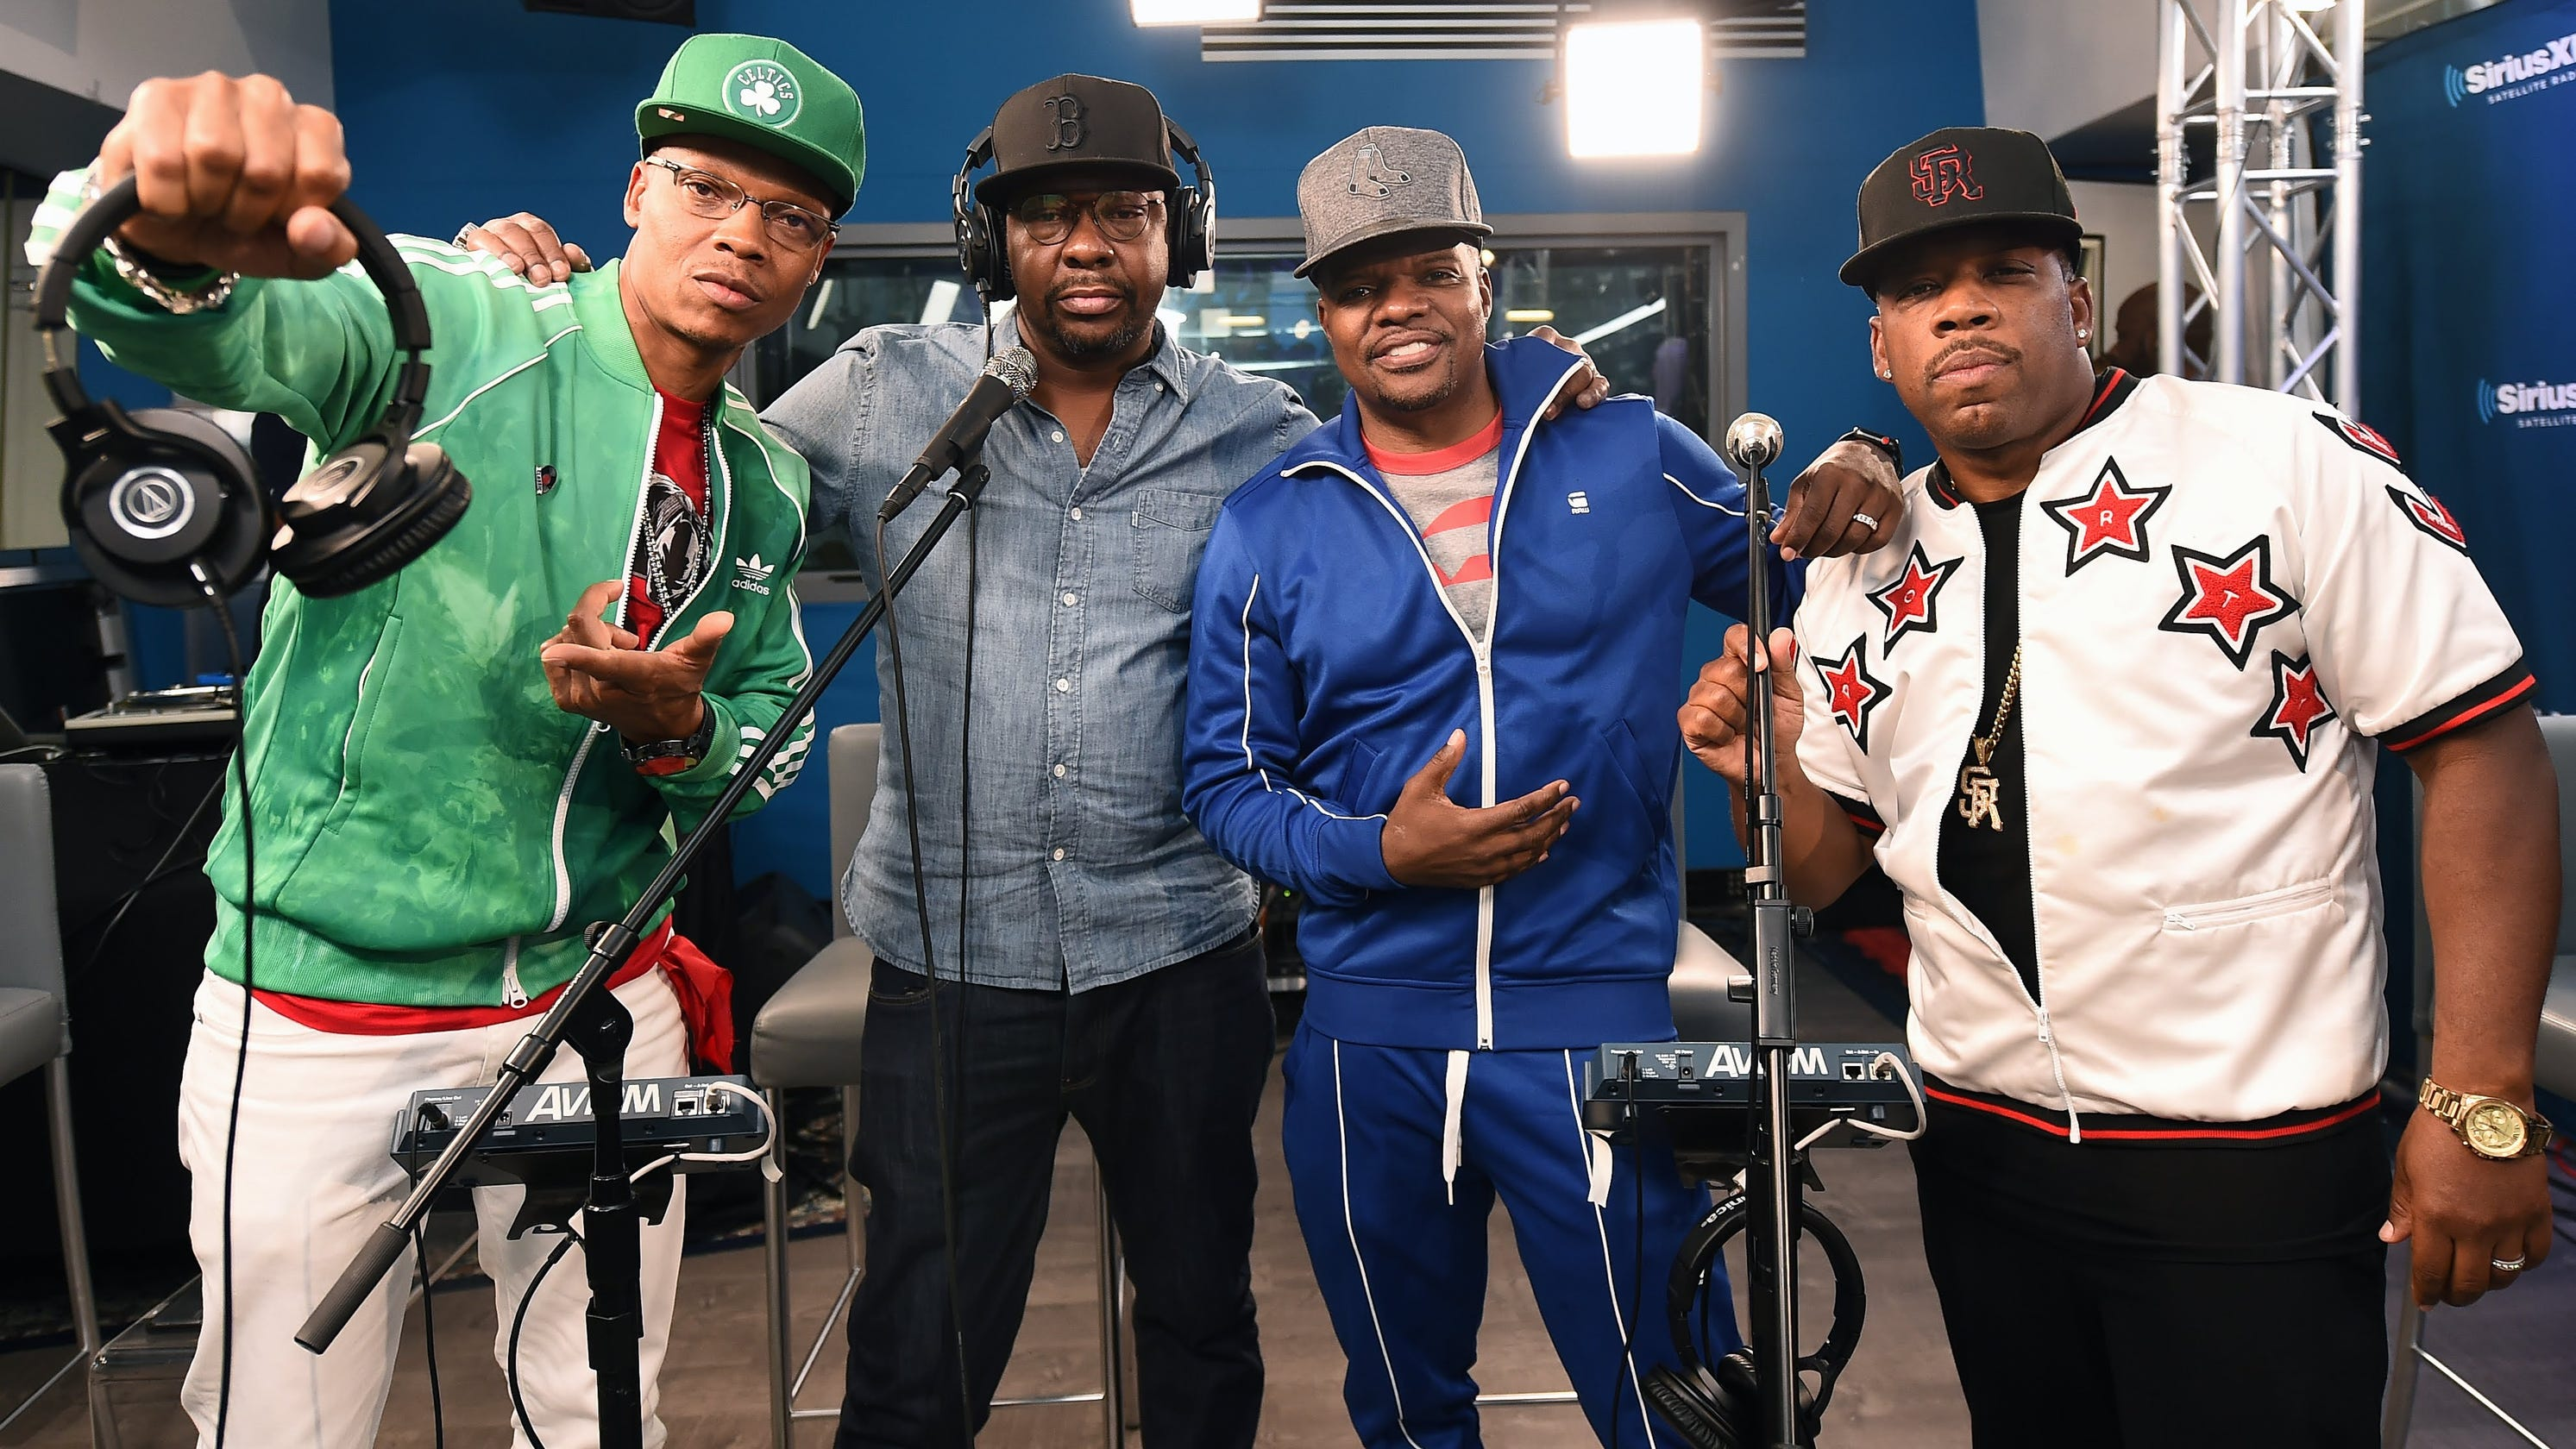 New Edition Concert Schedule 2019 Bobby Brown, Bell Biv Devoe will join forces as RBRM at Hoosier Park